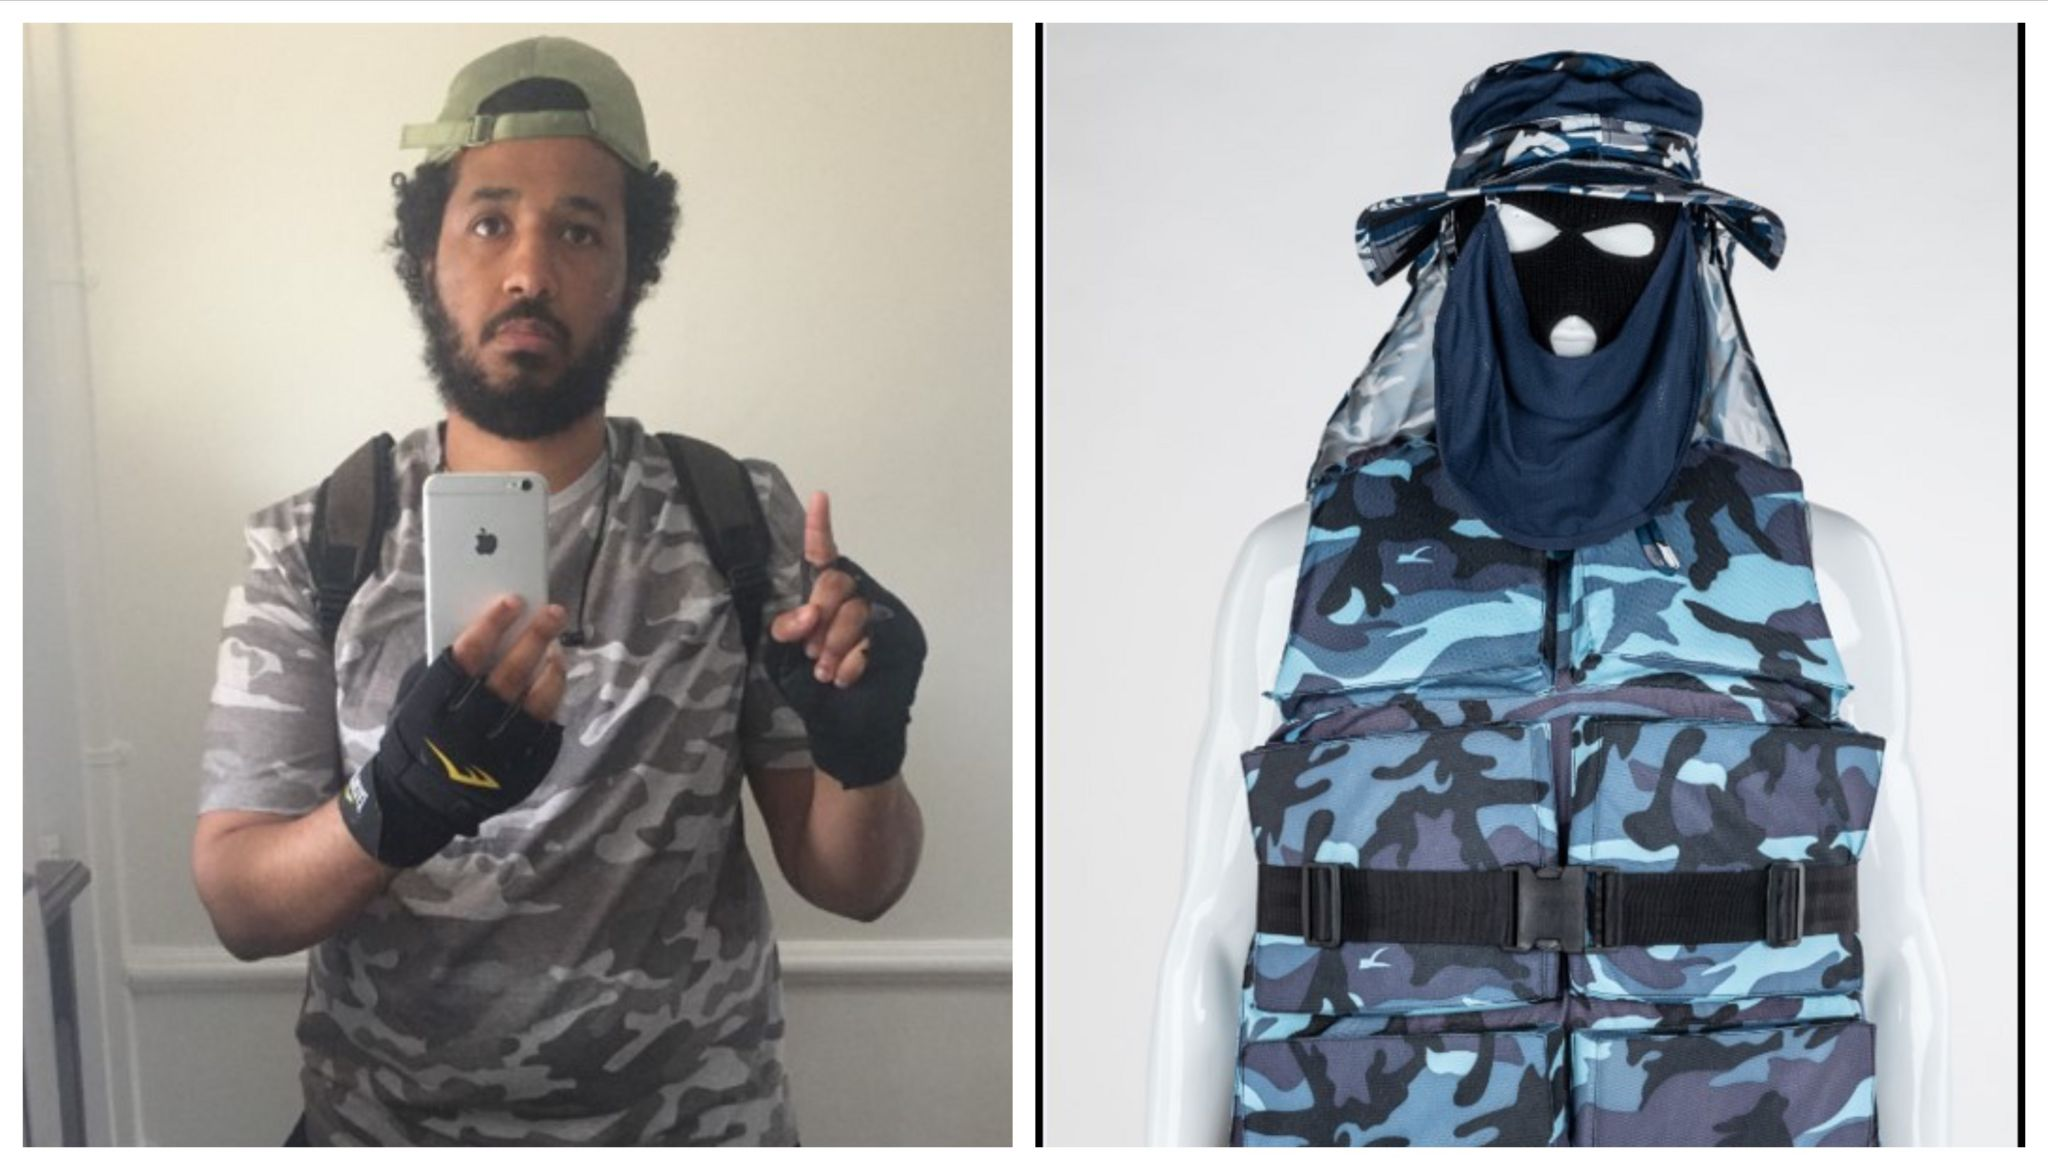 Sahayb Abu and the kit he planned to wear in the attack